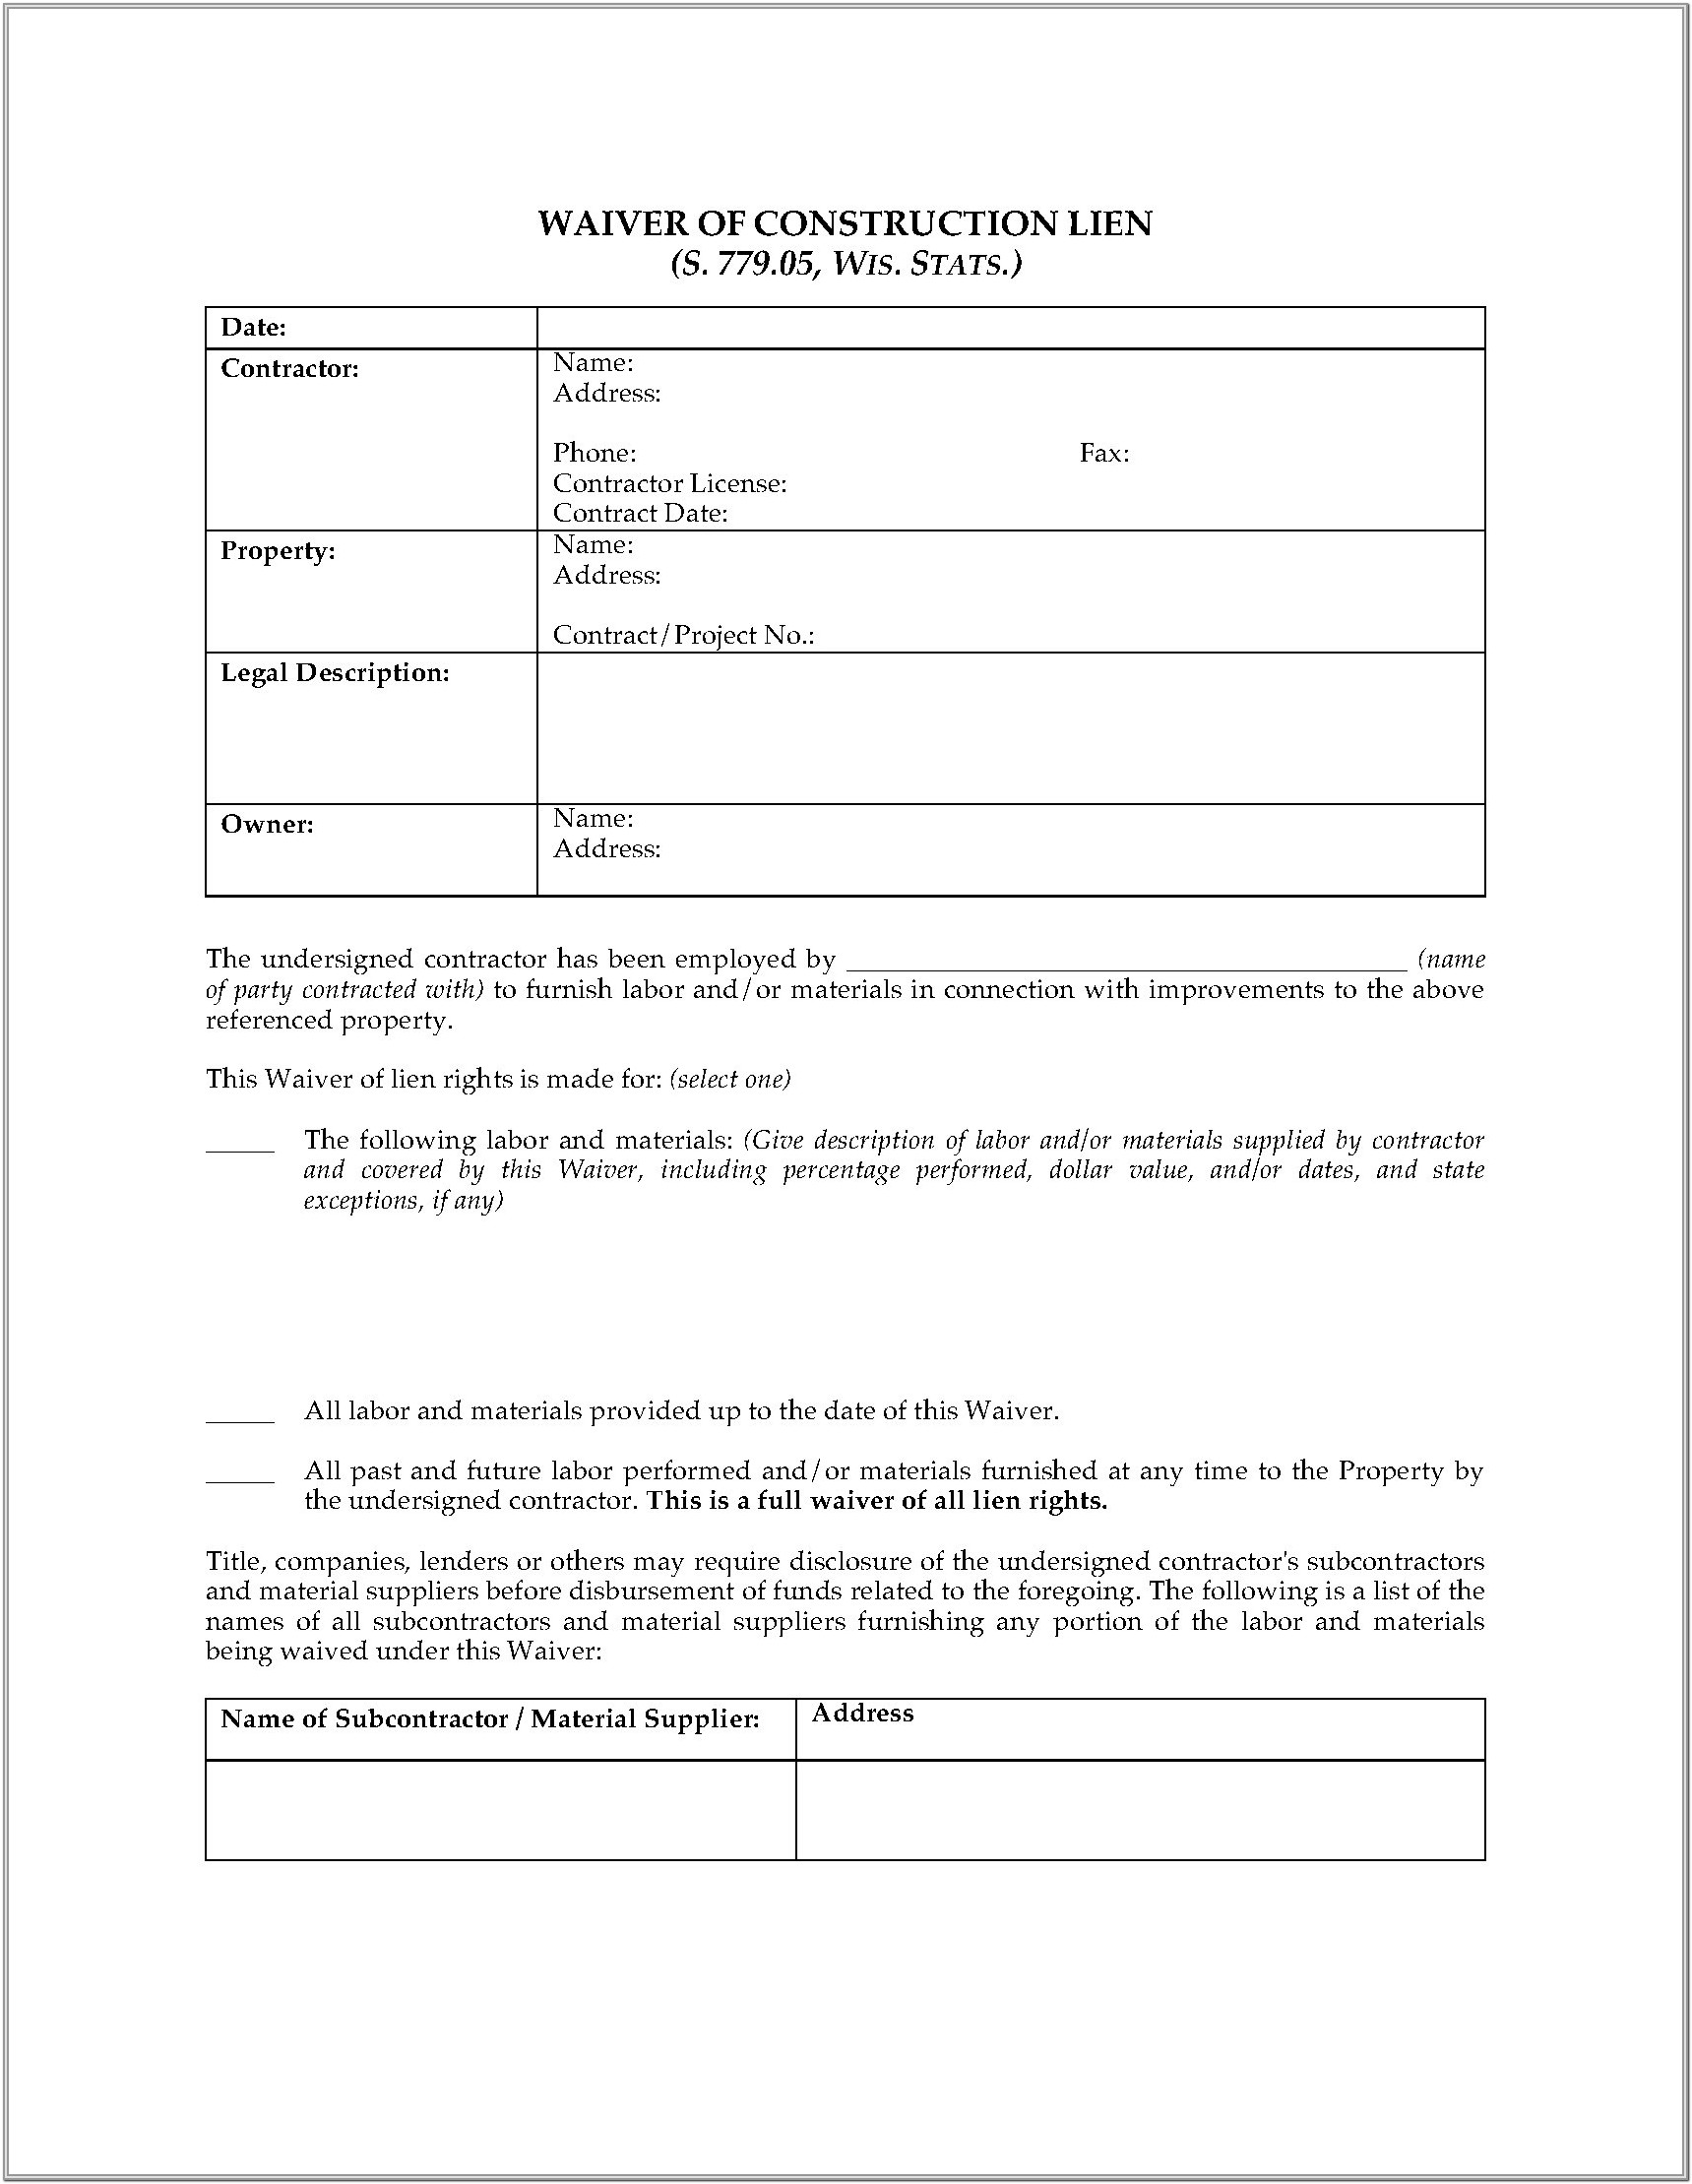 Wisconsin Construction Lien Forms